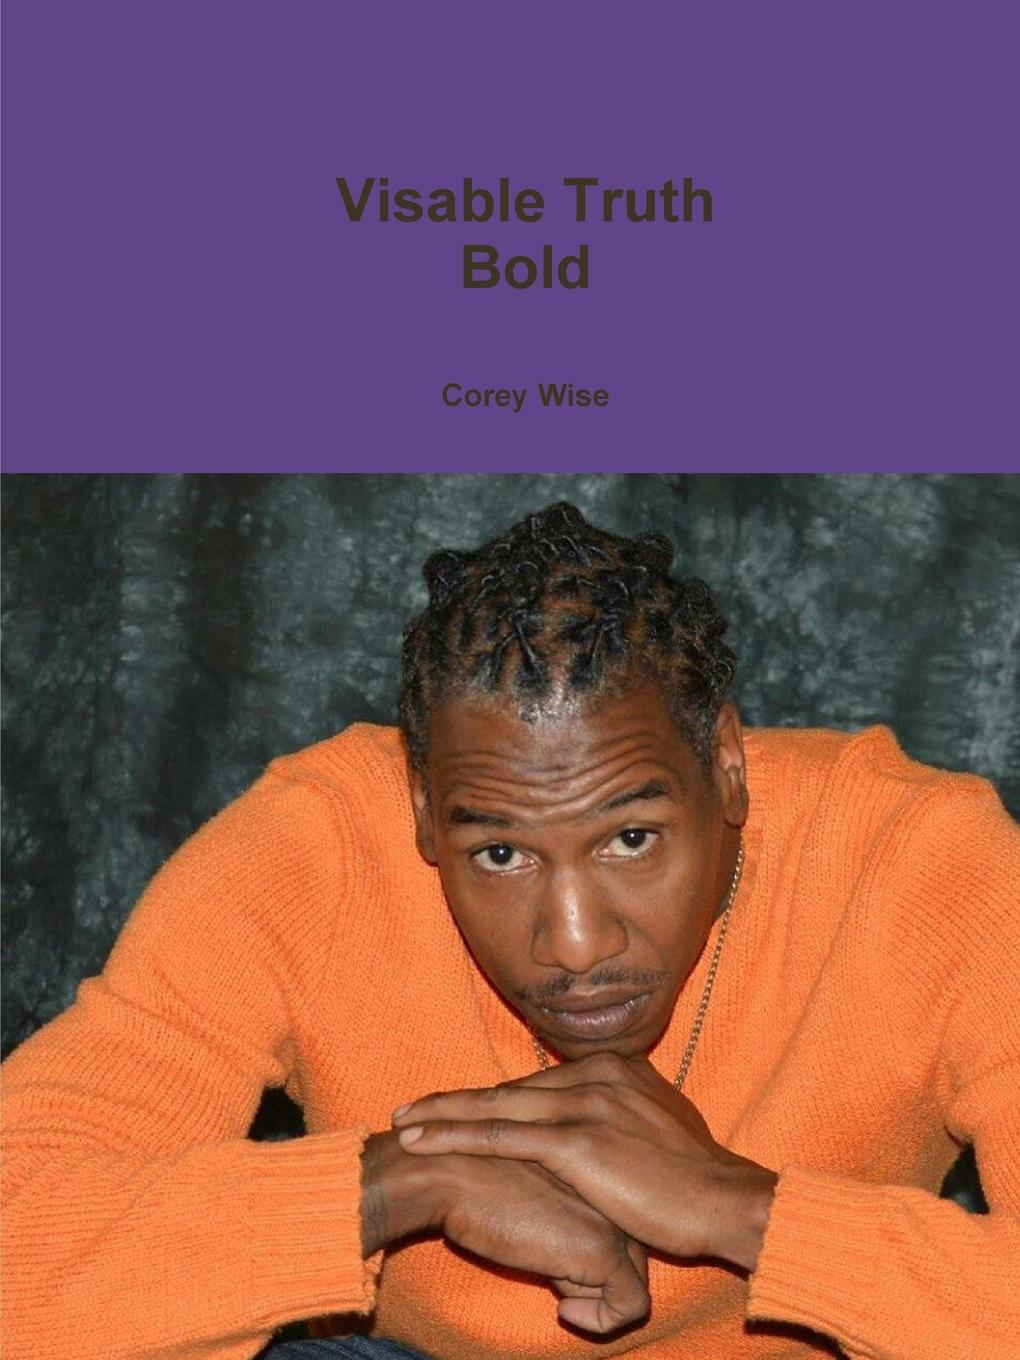 цены на Corey Wise Visable Truth  в интернет-магазинах